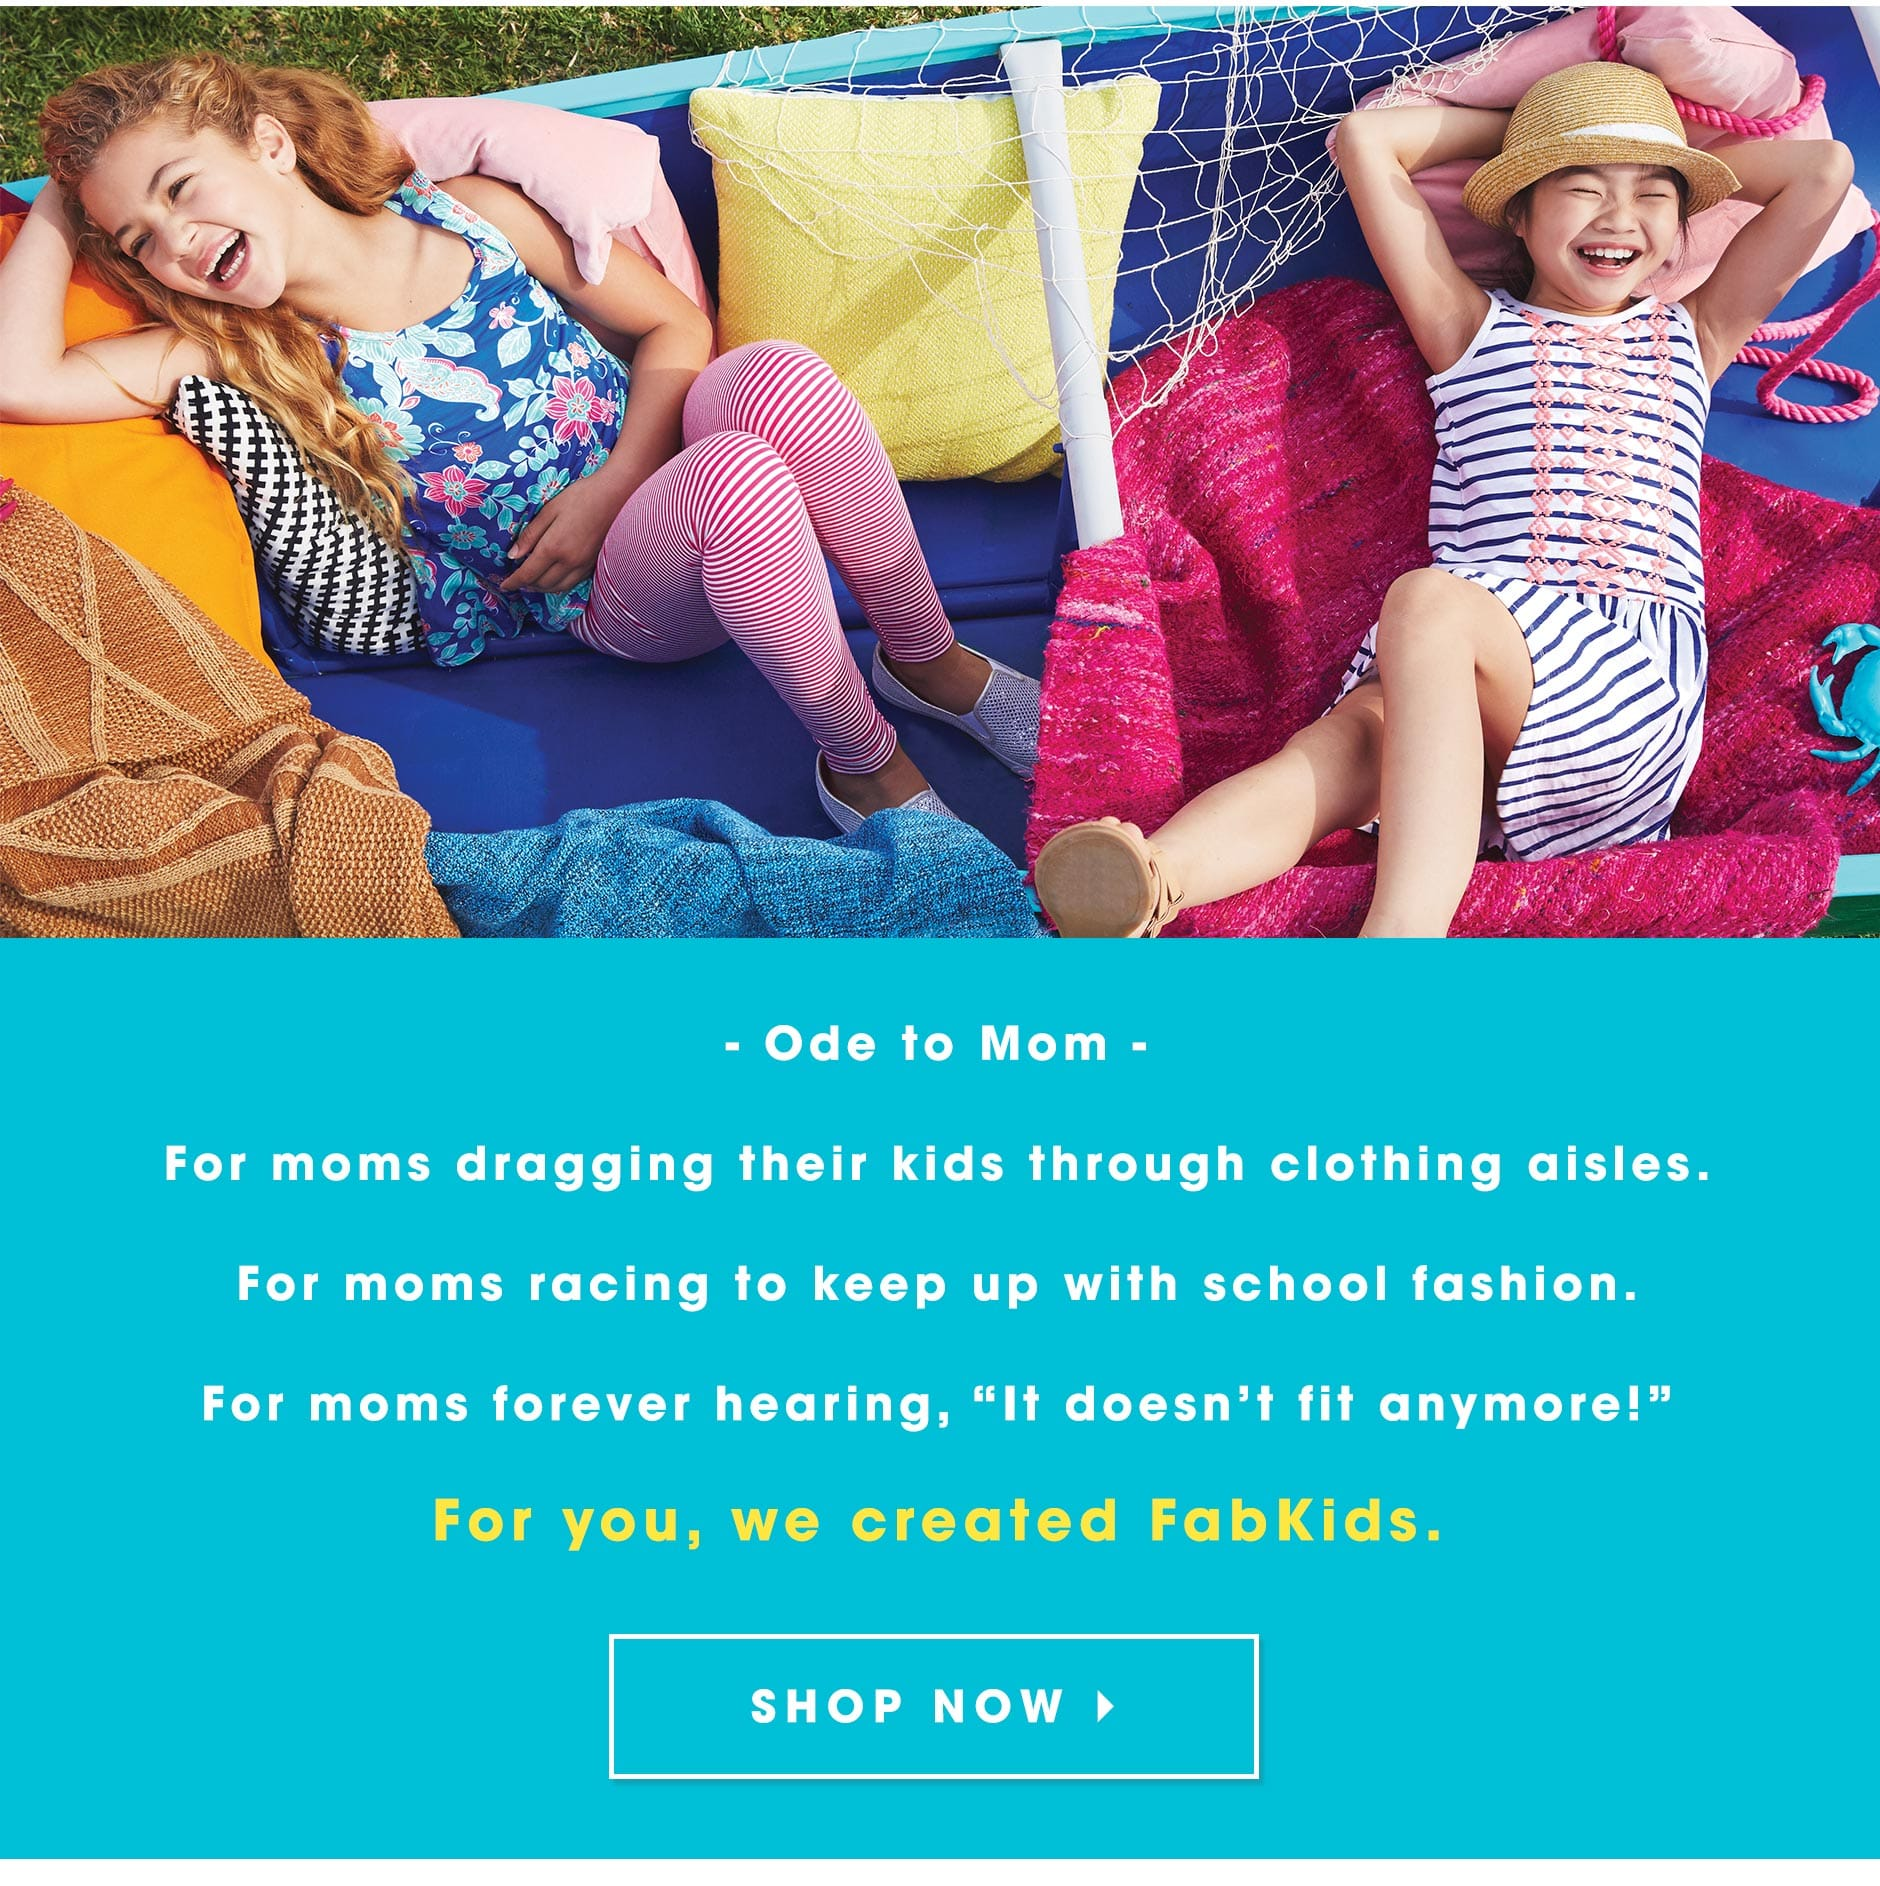 """Ode to Mom: For moms dragging their kids through clothing aisles. For moms racing to keep up with school fashion. For moms forever hearing, """"It doesn't fit anymore!� For you, we created FabKids."""